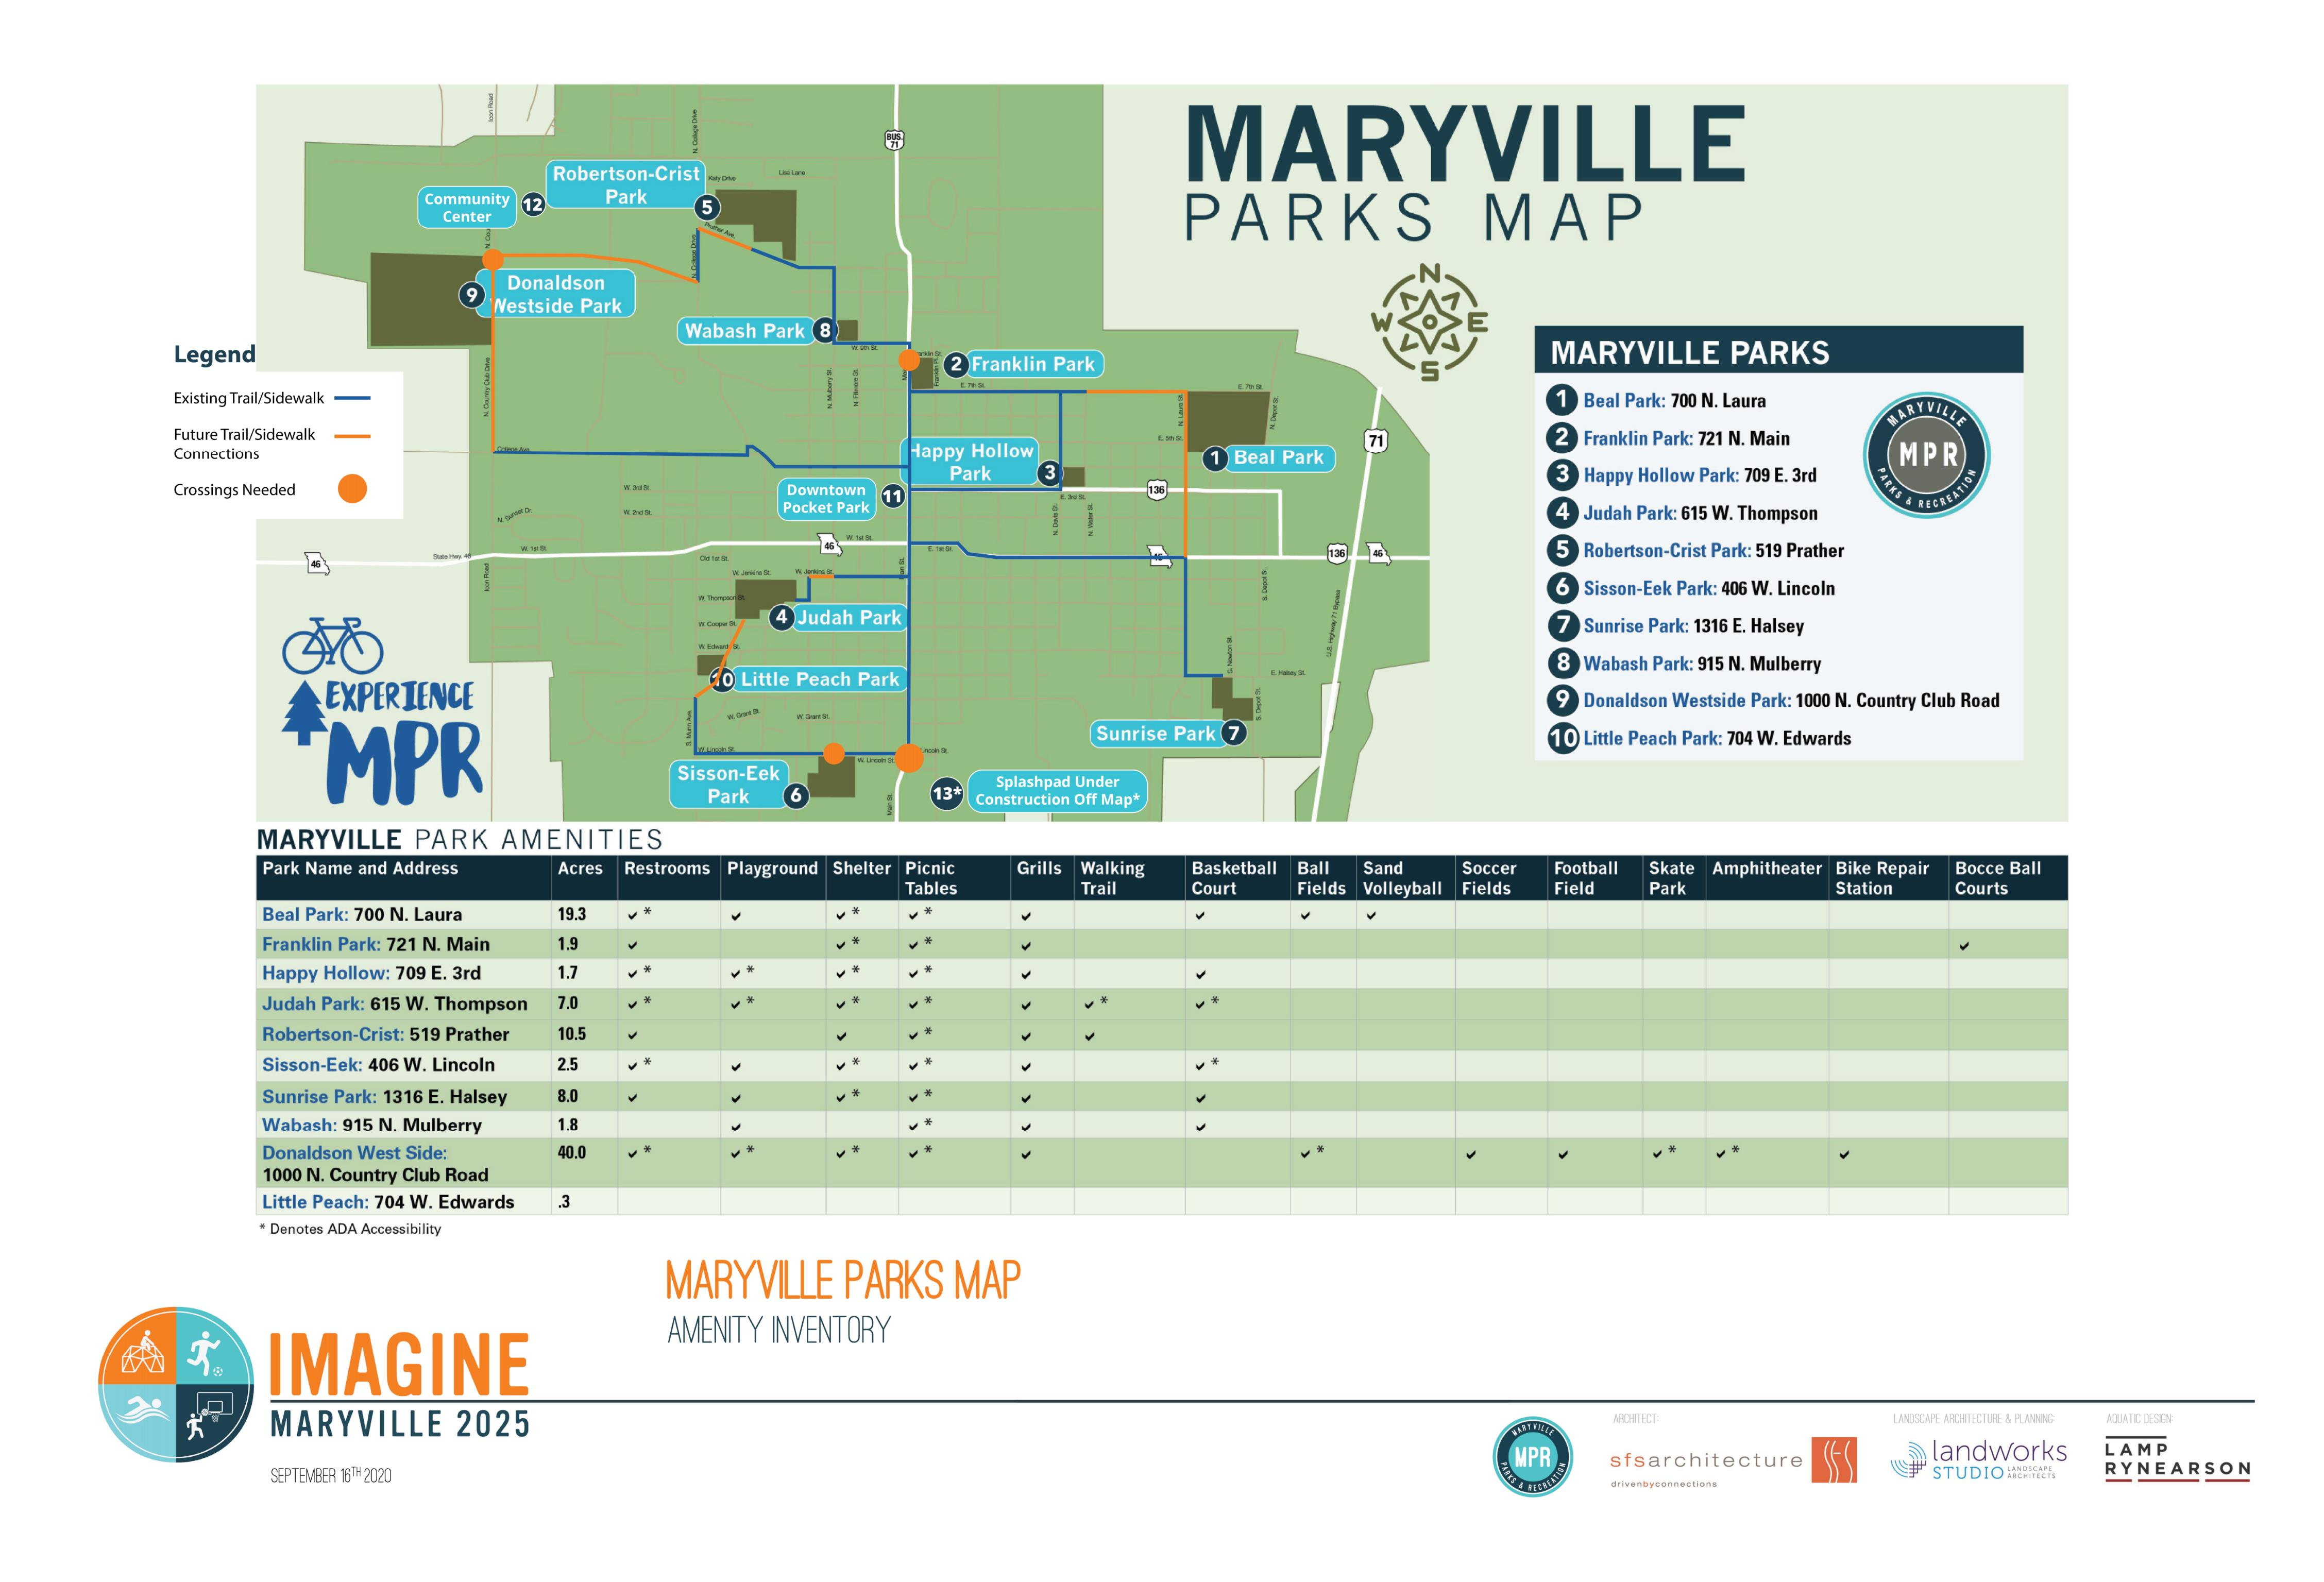 Current Park Inventory Map and Connectivity<br><br>This map is provided for reference showing all of the parks maintained by the City of Maryville Parks and Recreation.